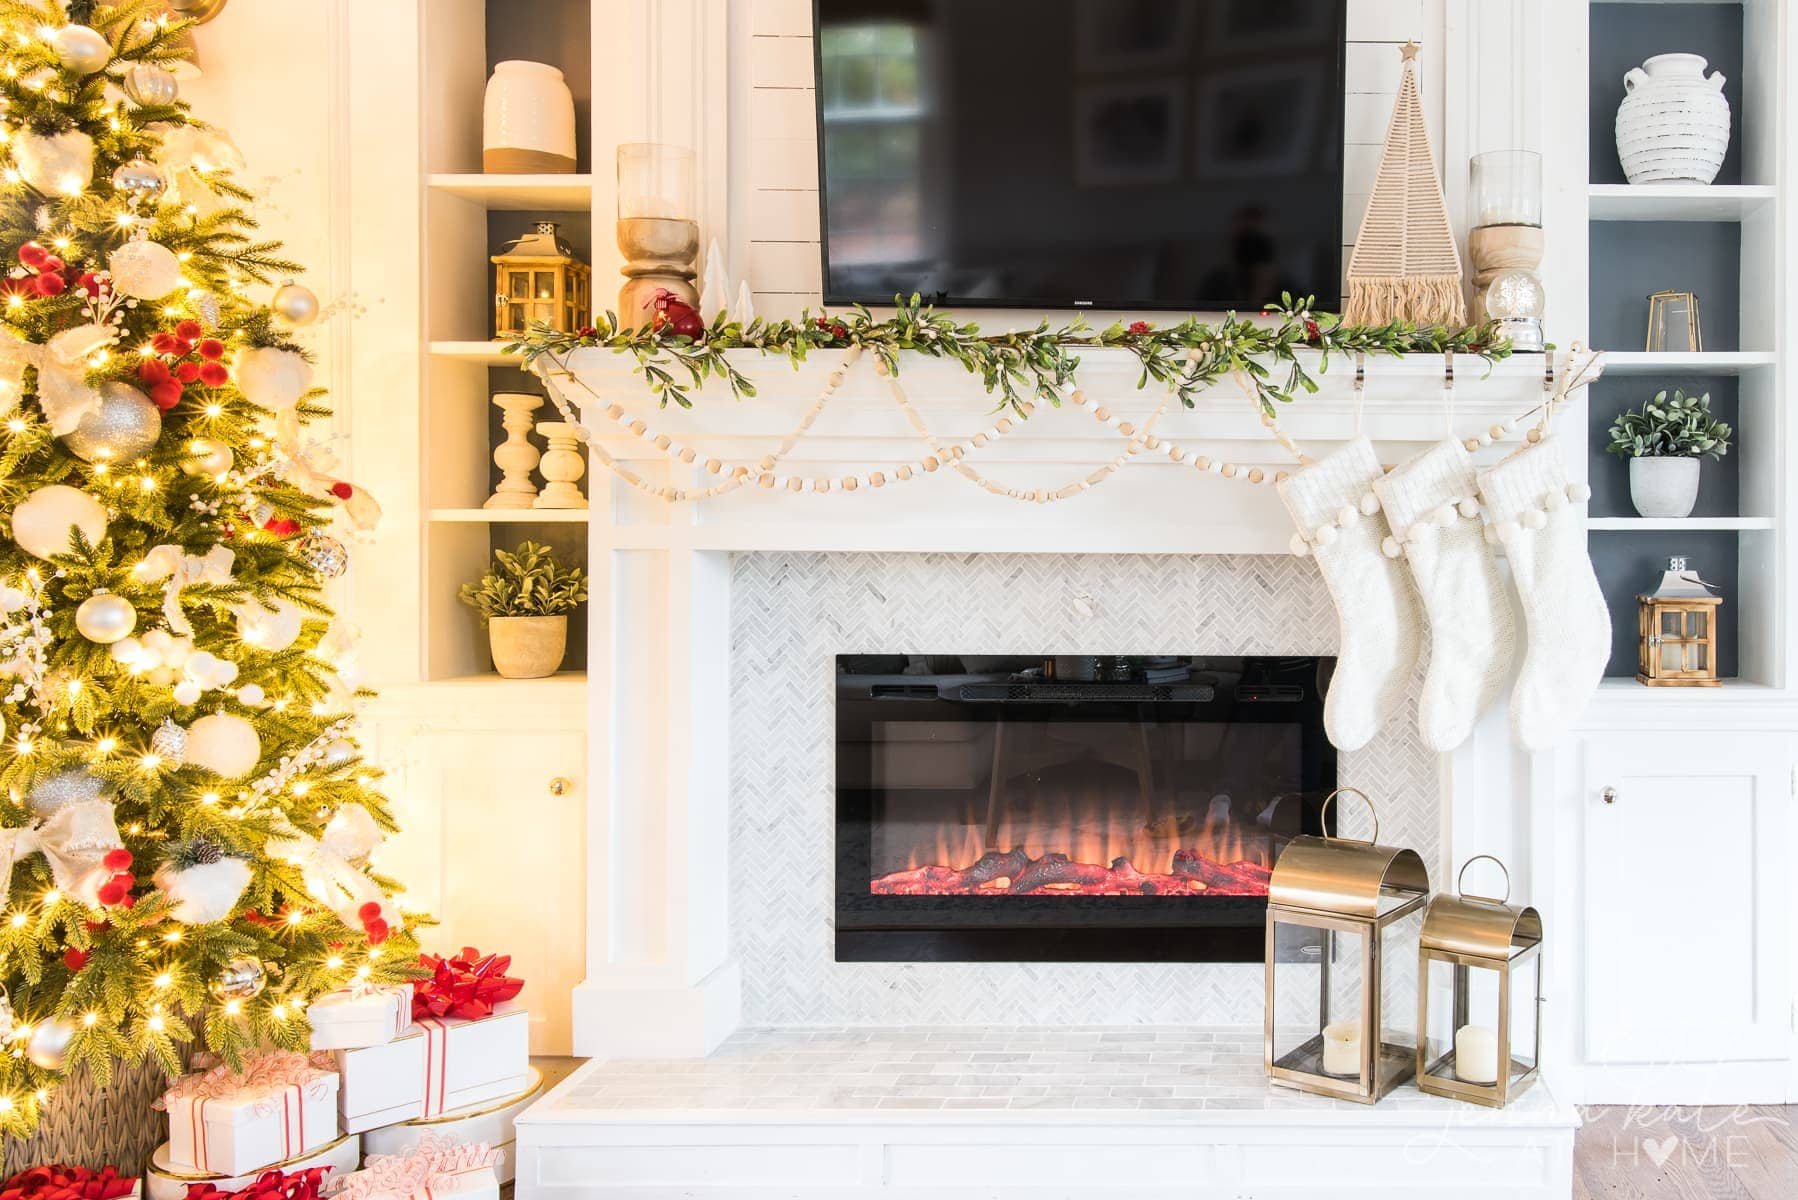 Christmas Ideas Decorating A Mantel With A Tv Above Jenna Kate At Home